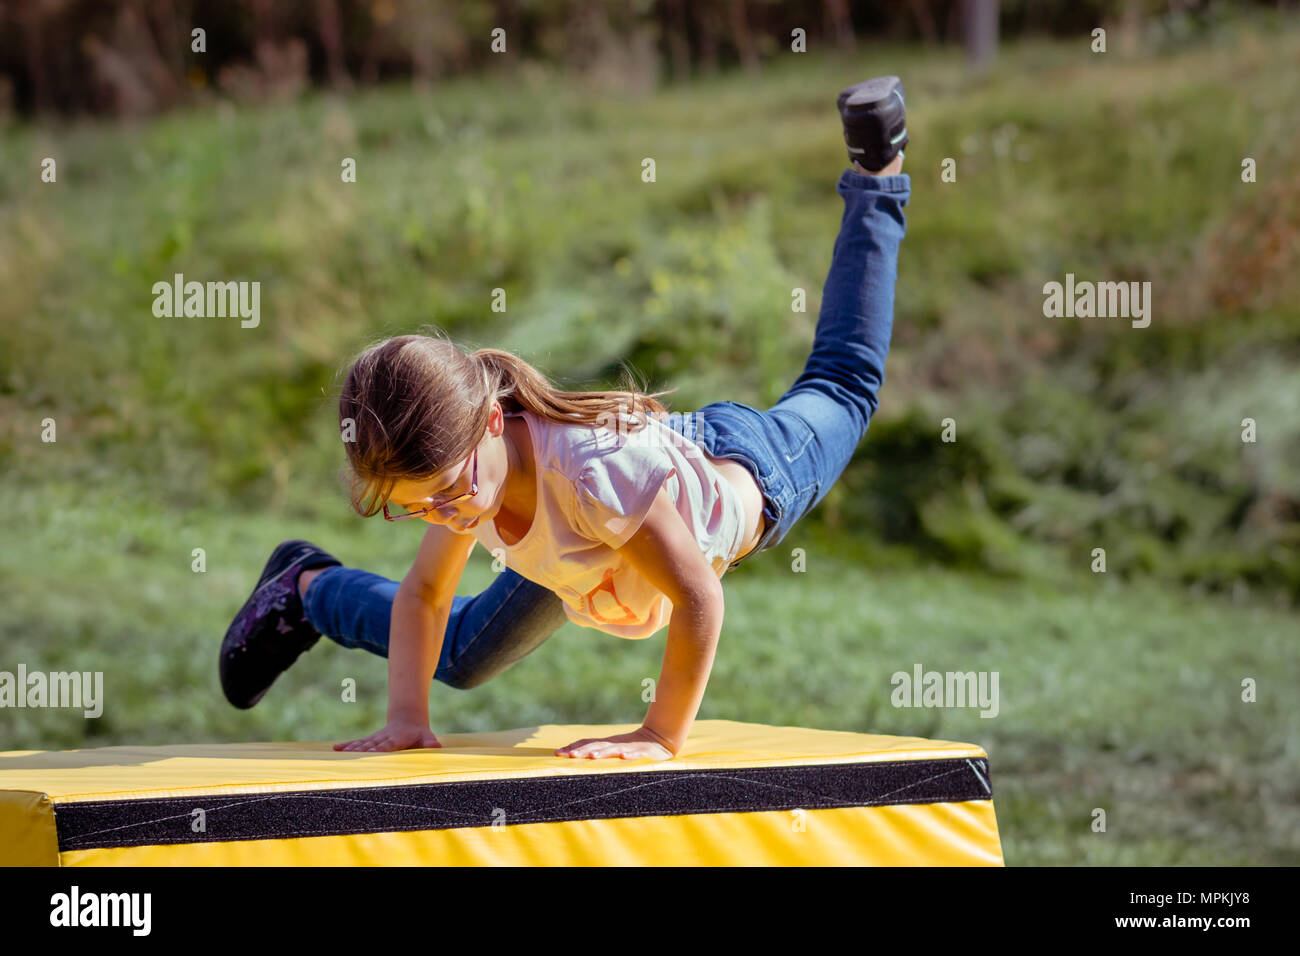 Girl Child Practicing (Practising) Parkour Gymnastics Outside on Vaulting Horse Stock Photo